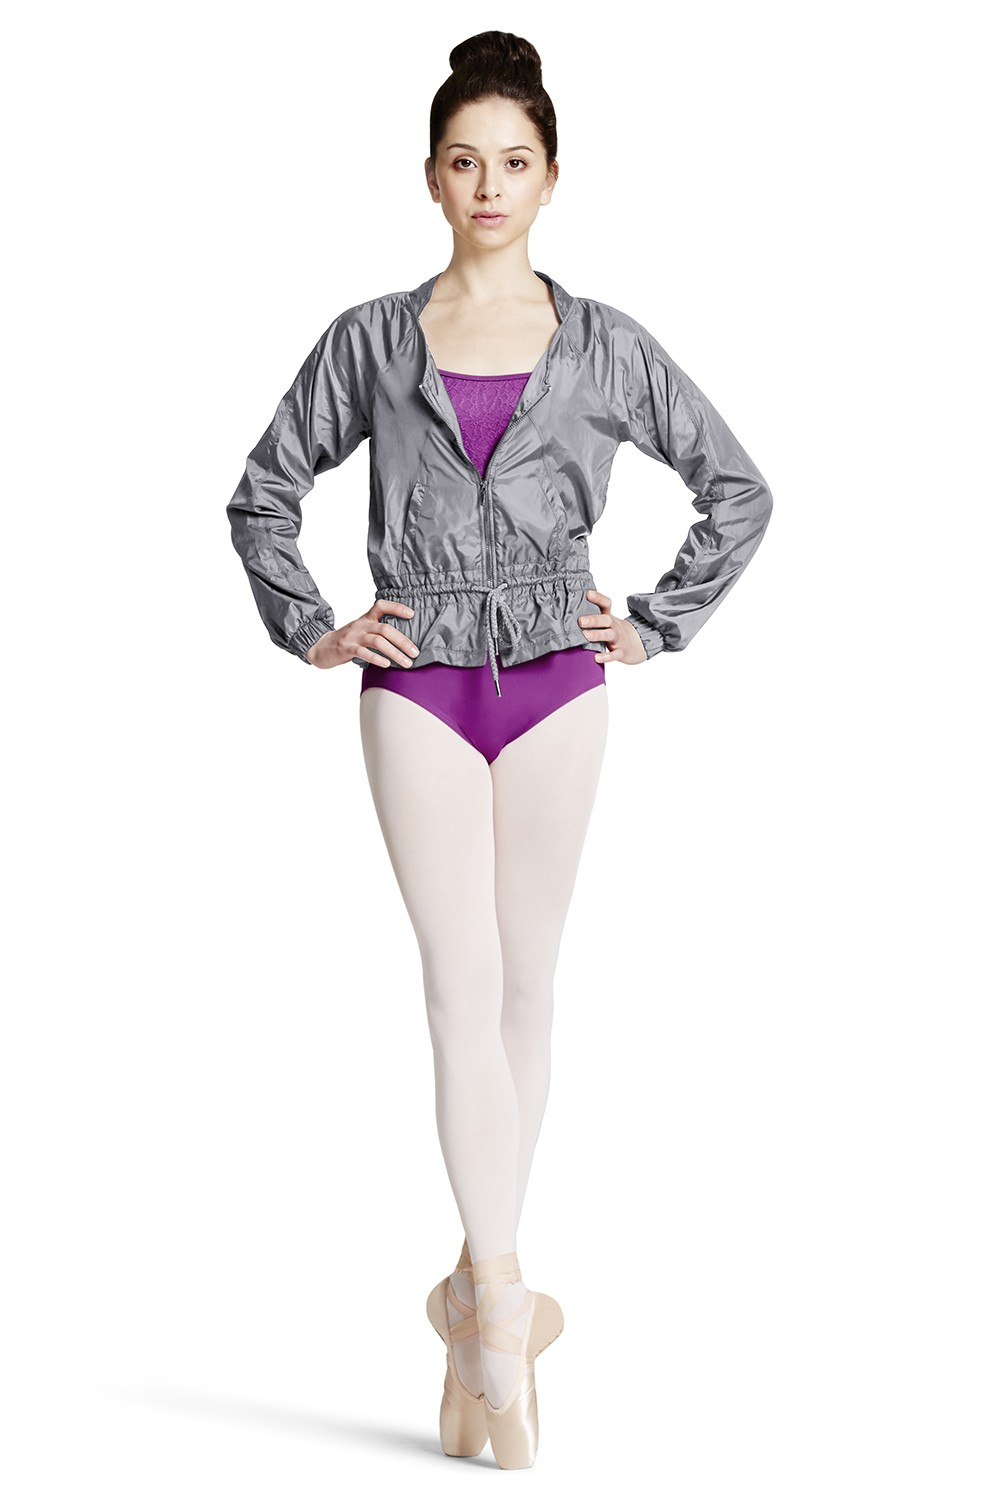 Ripstop Jacket Women's Dance Warmups